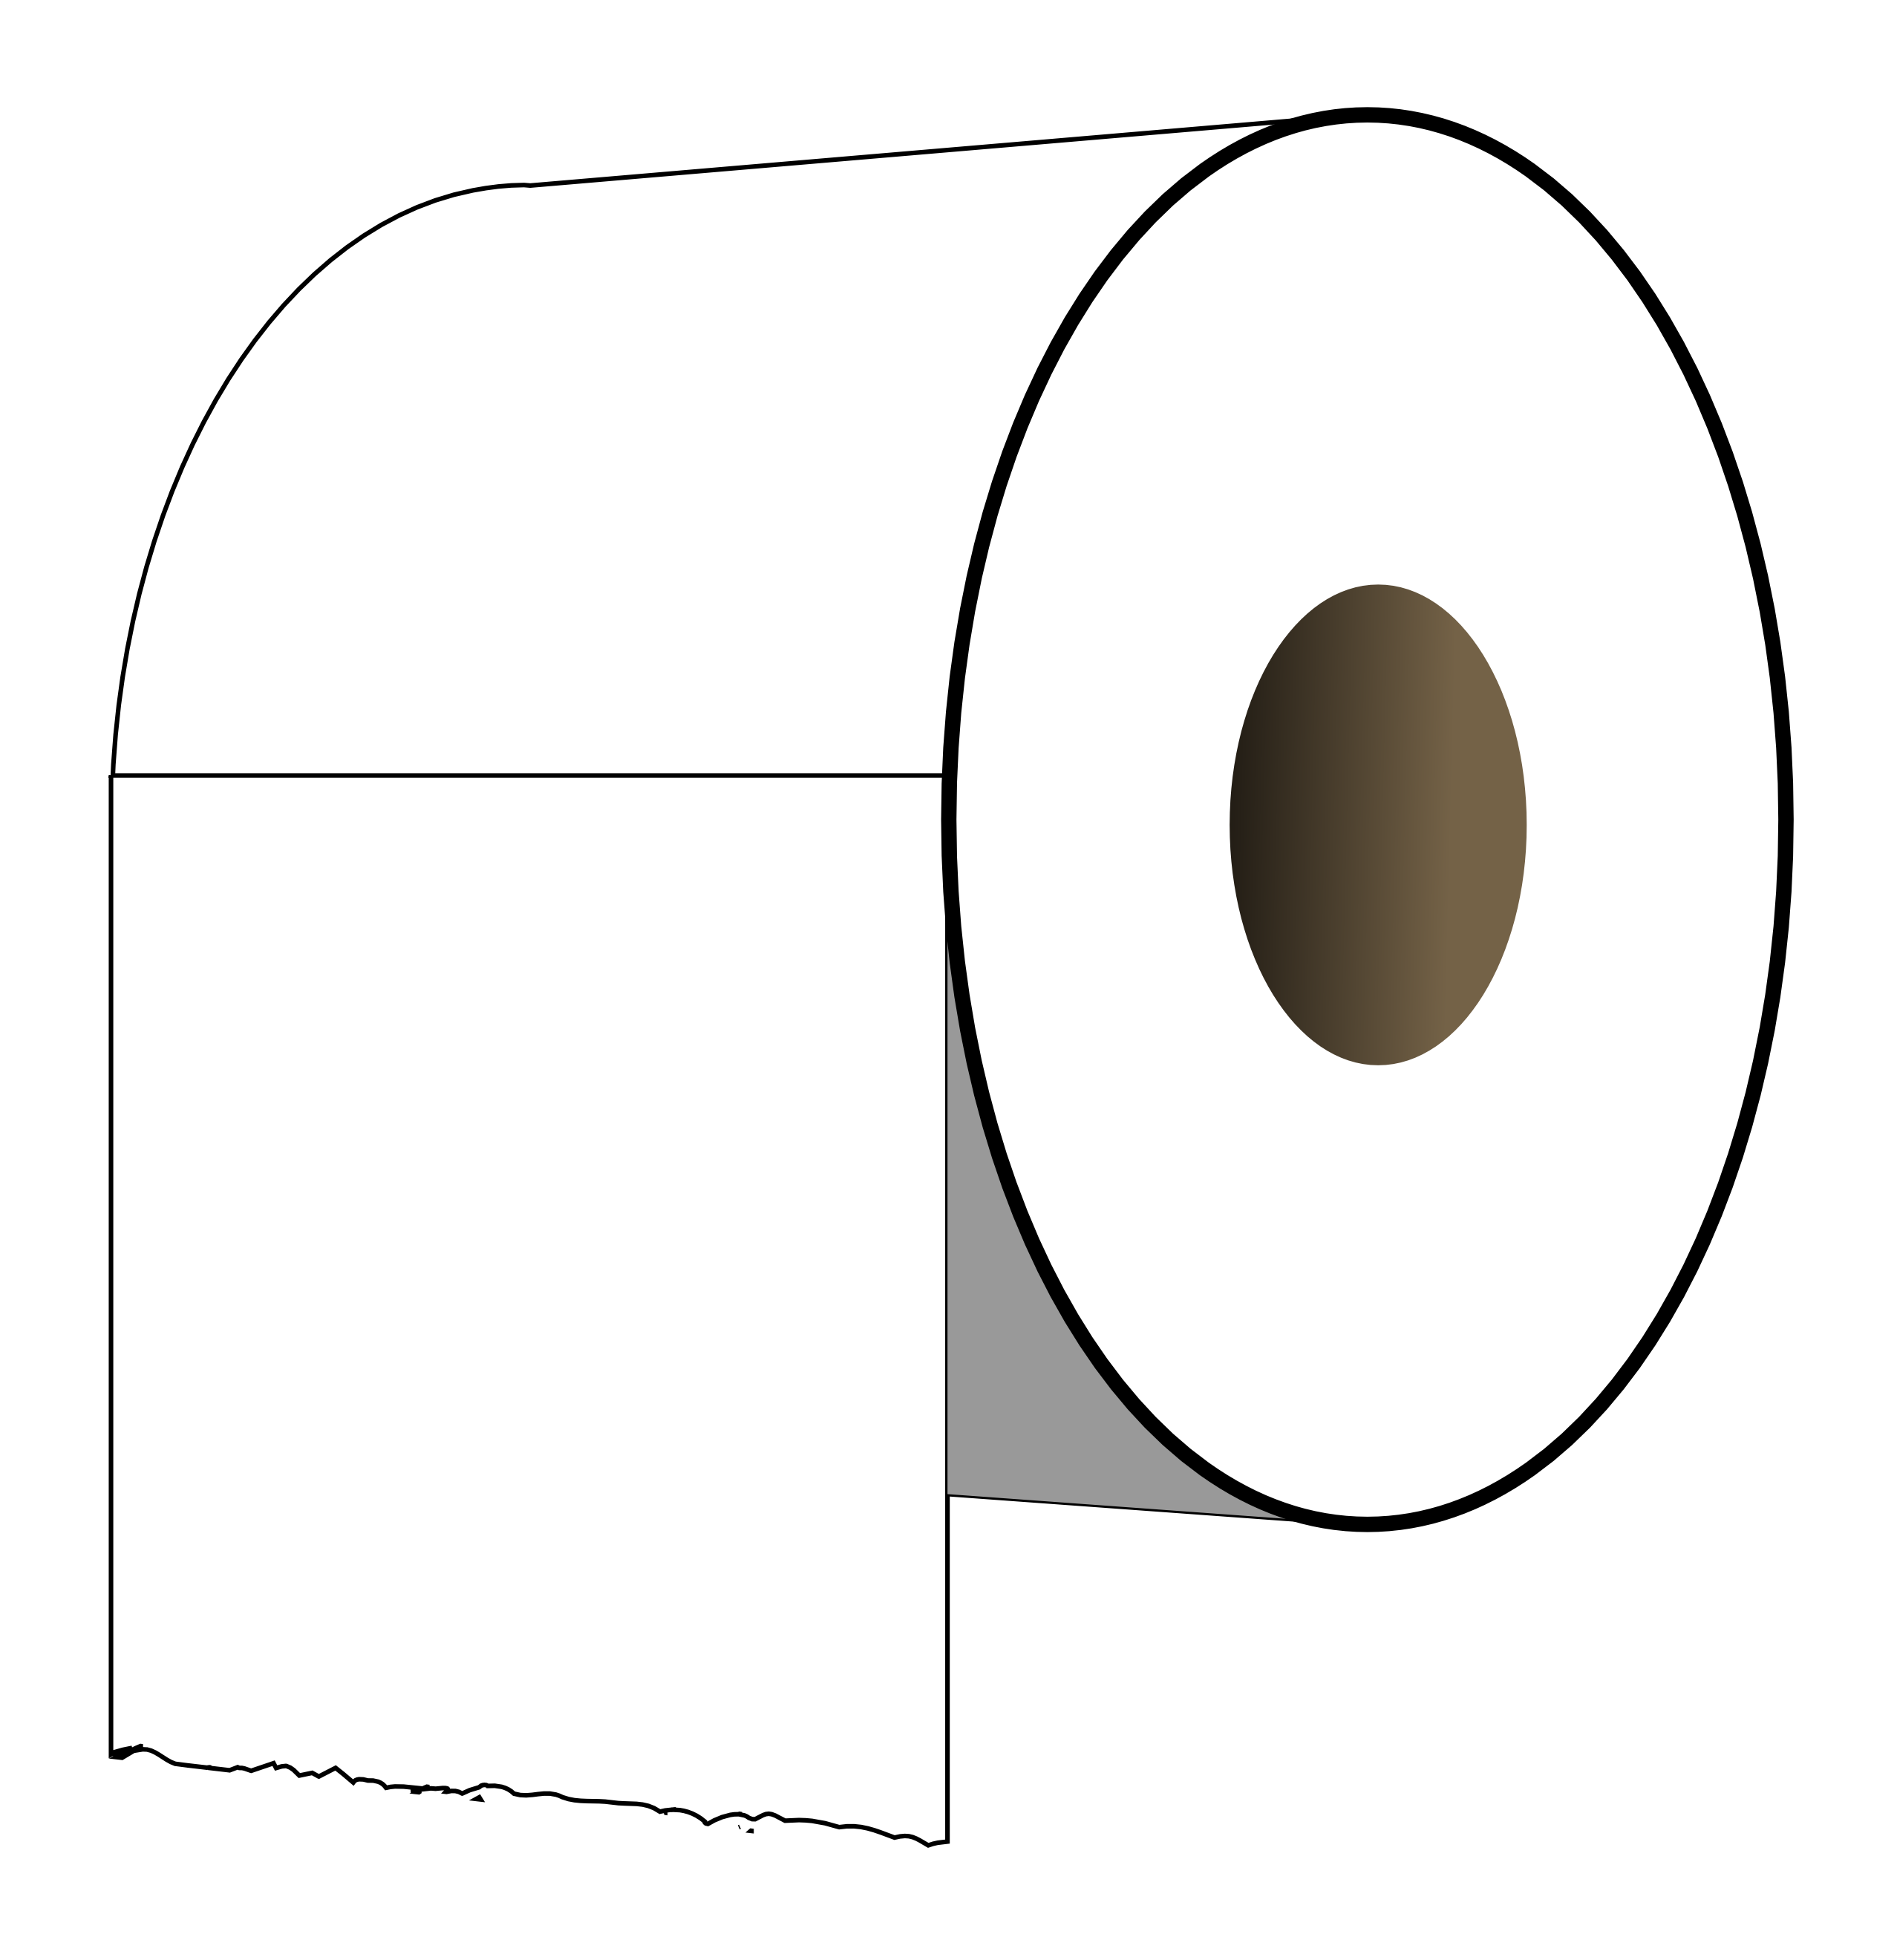 15 Toilet Paper Clipart Free Cliparts Th-15 Toilet Paper Clipart Free Cliparts That You Can Download To You-1